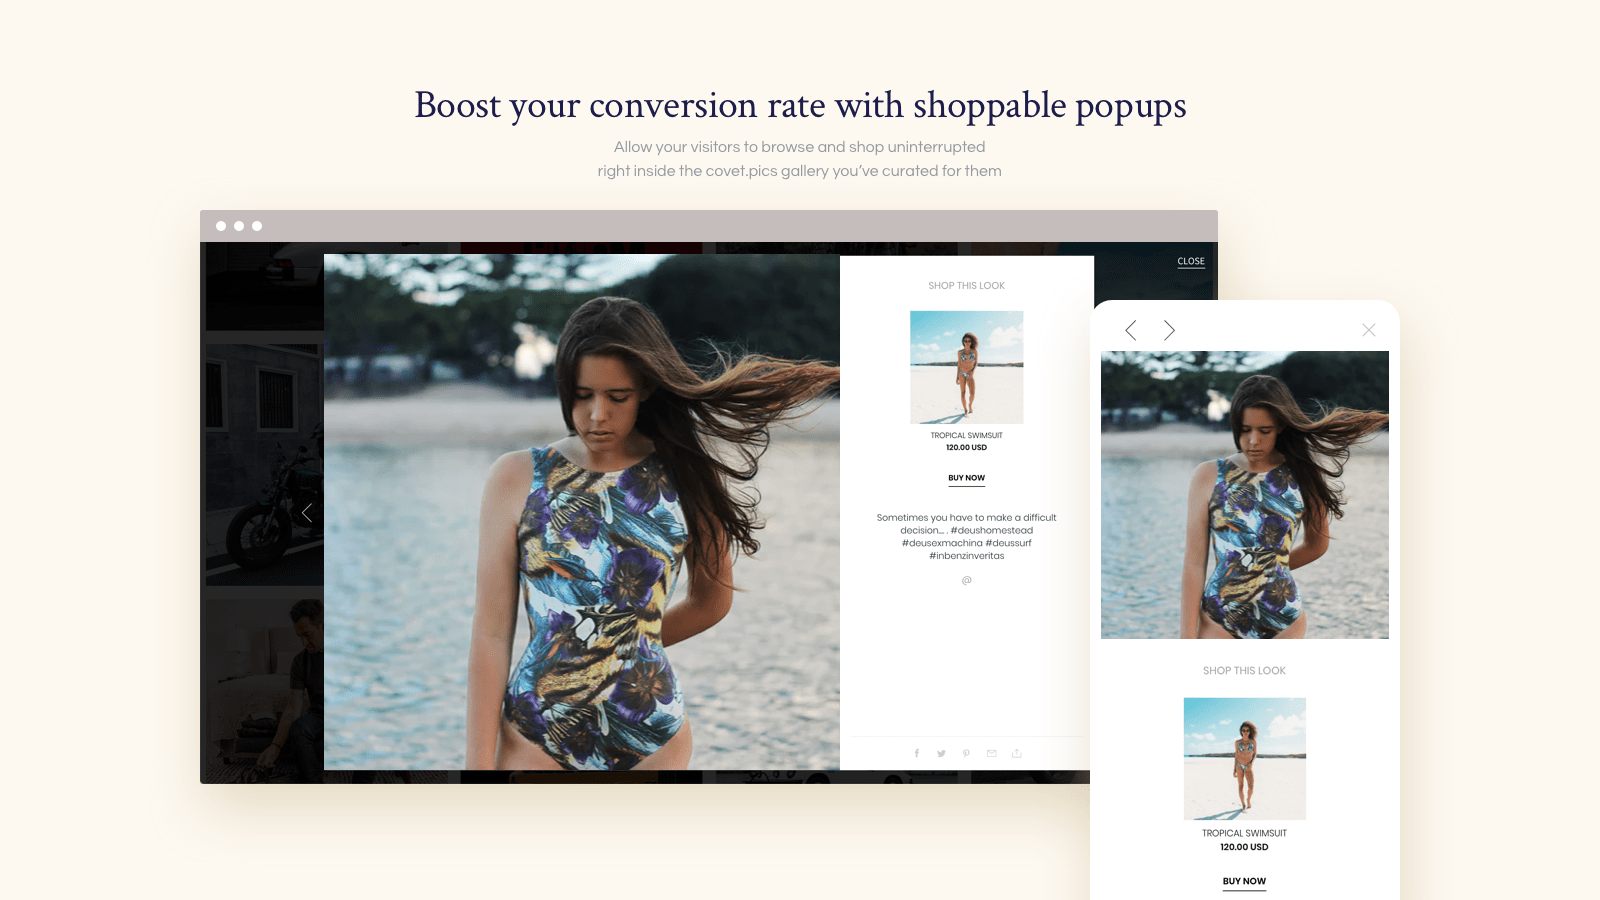 Boost your conversion rate with shoppable popups